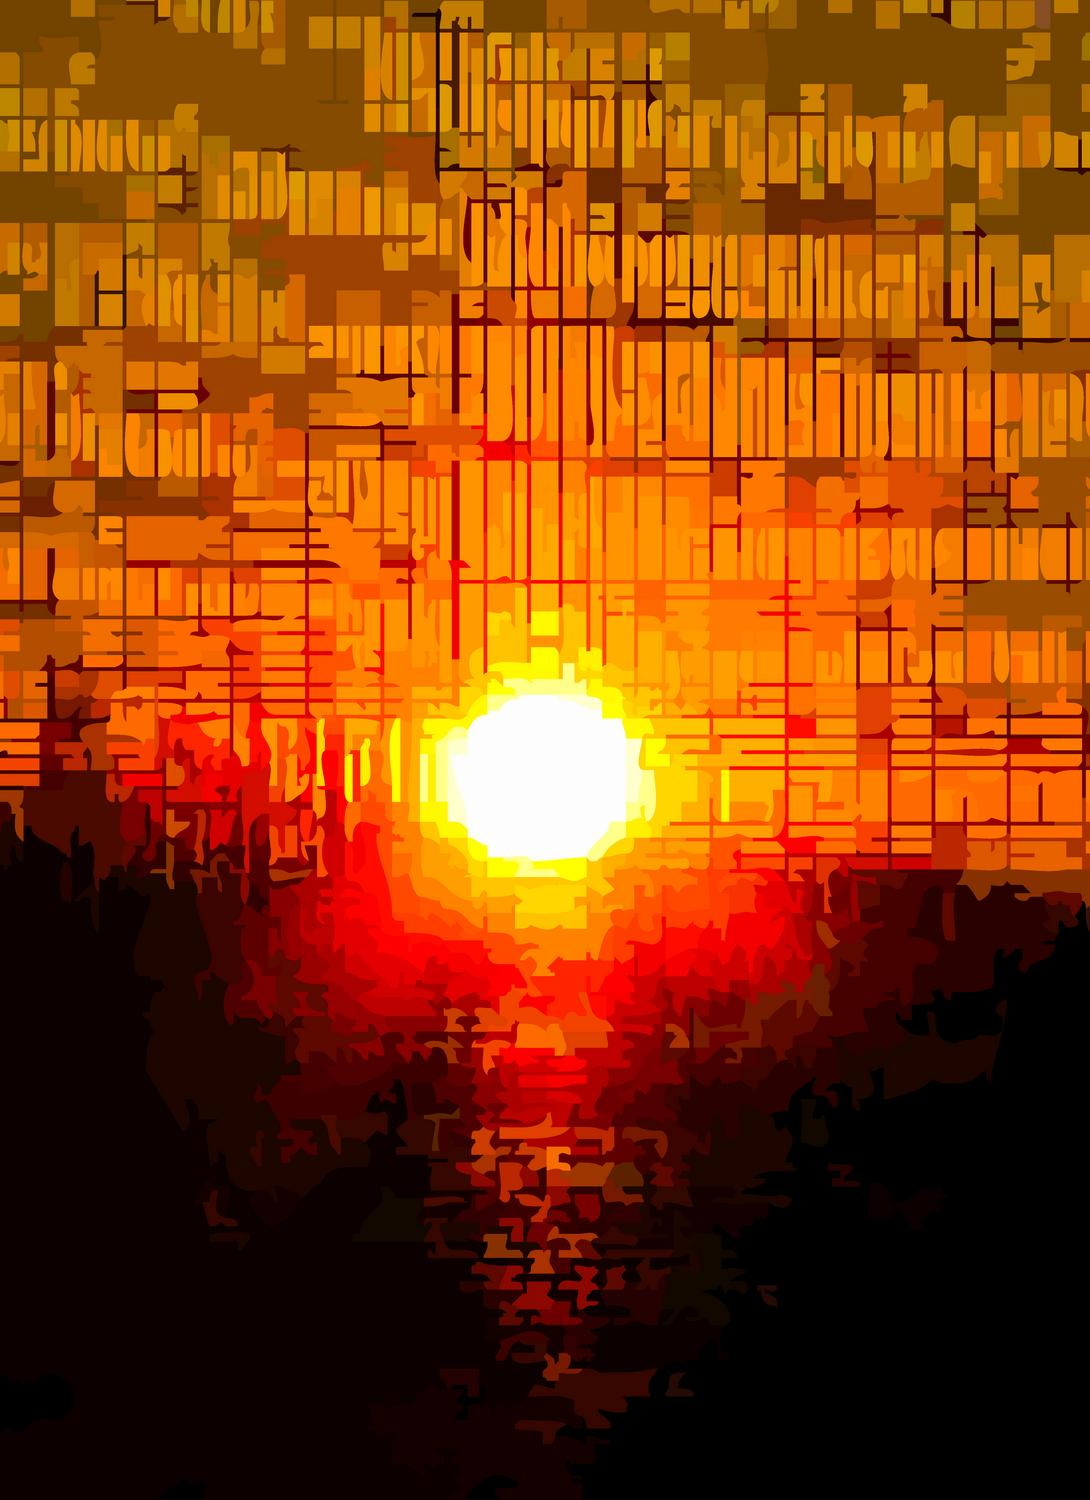 the sun coming through a screen - Detail of Sunset with rhythmic beats and waves - Panasonic DMC-FZ28 - Tony Karp, design, art, photography, techno-impressionist, techno-impressionism, aerial photography , drone , drones , dji , mavic pro , video , 3D printing - Books -